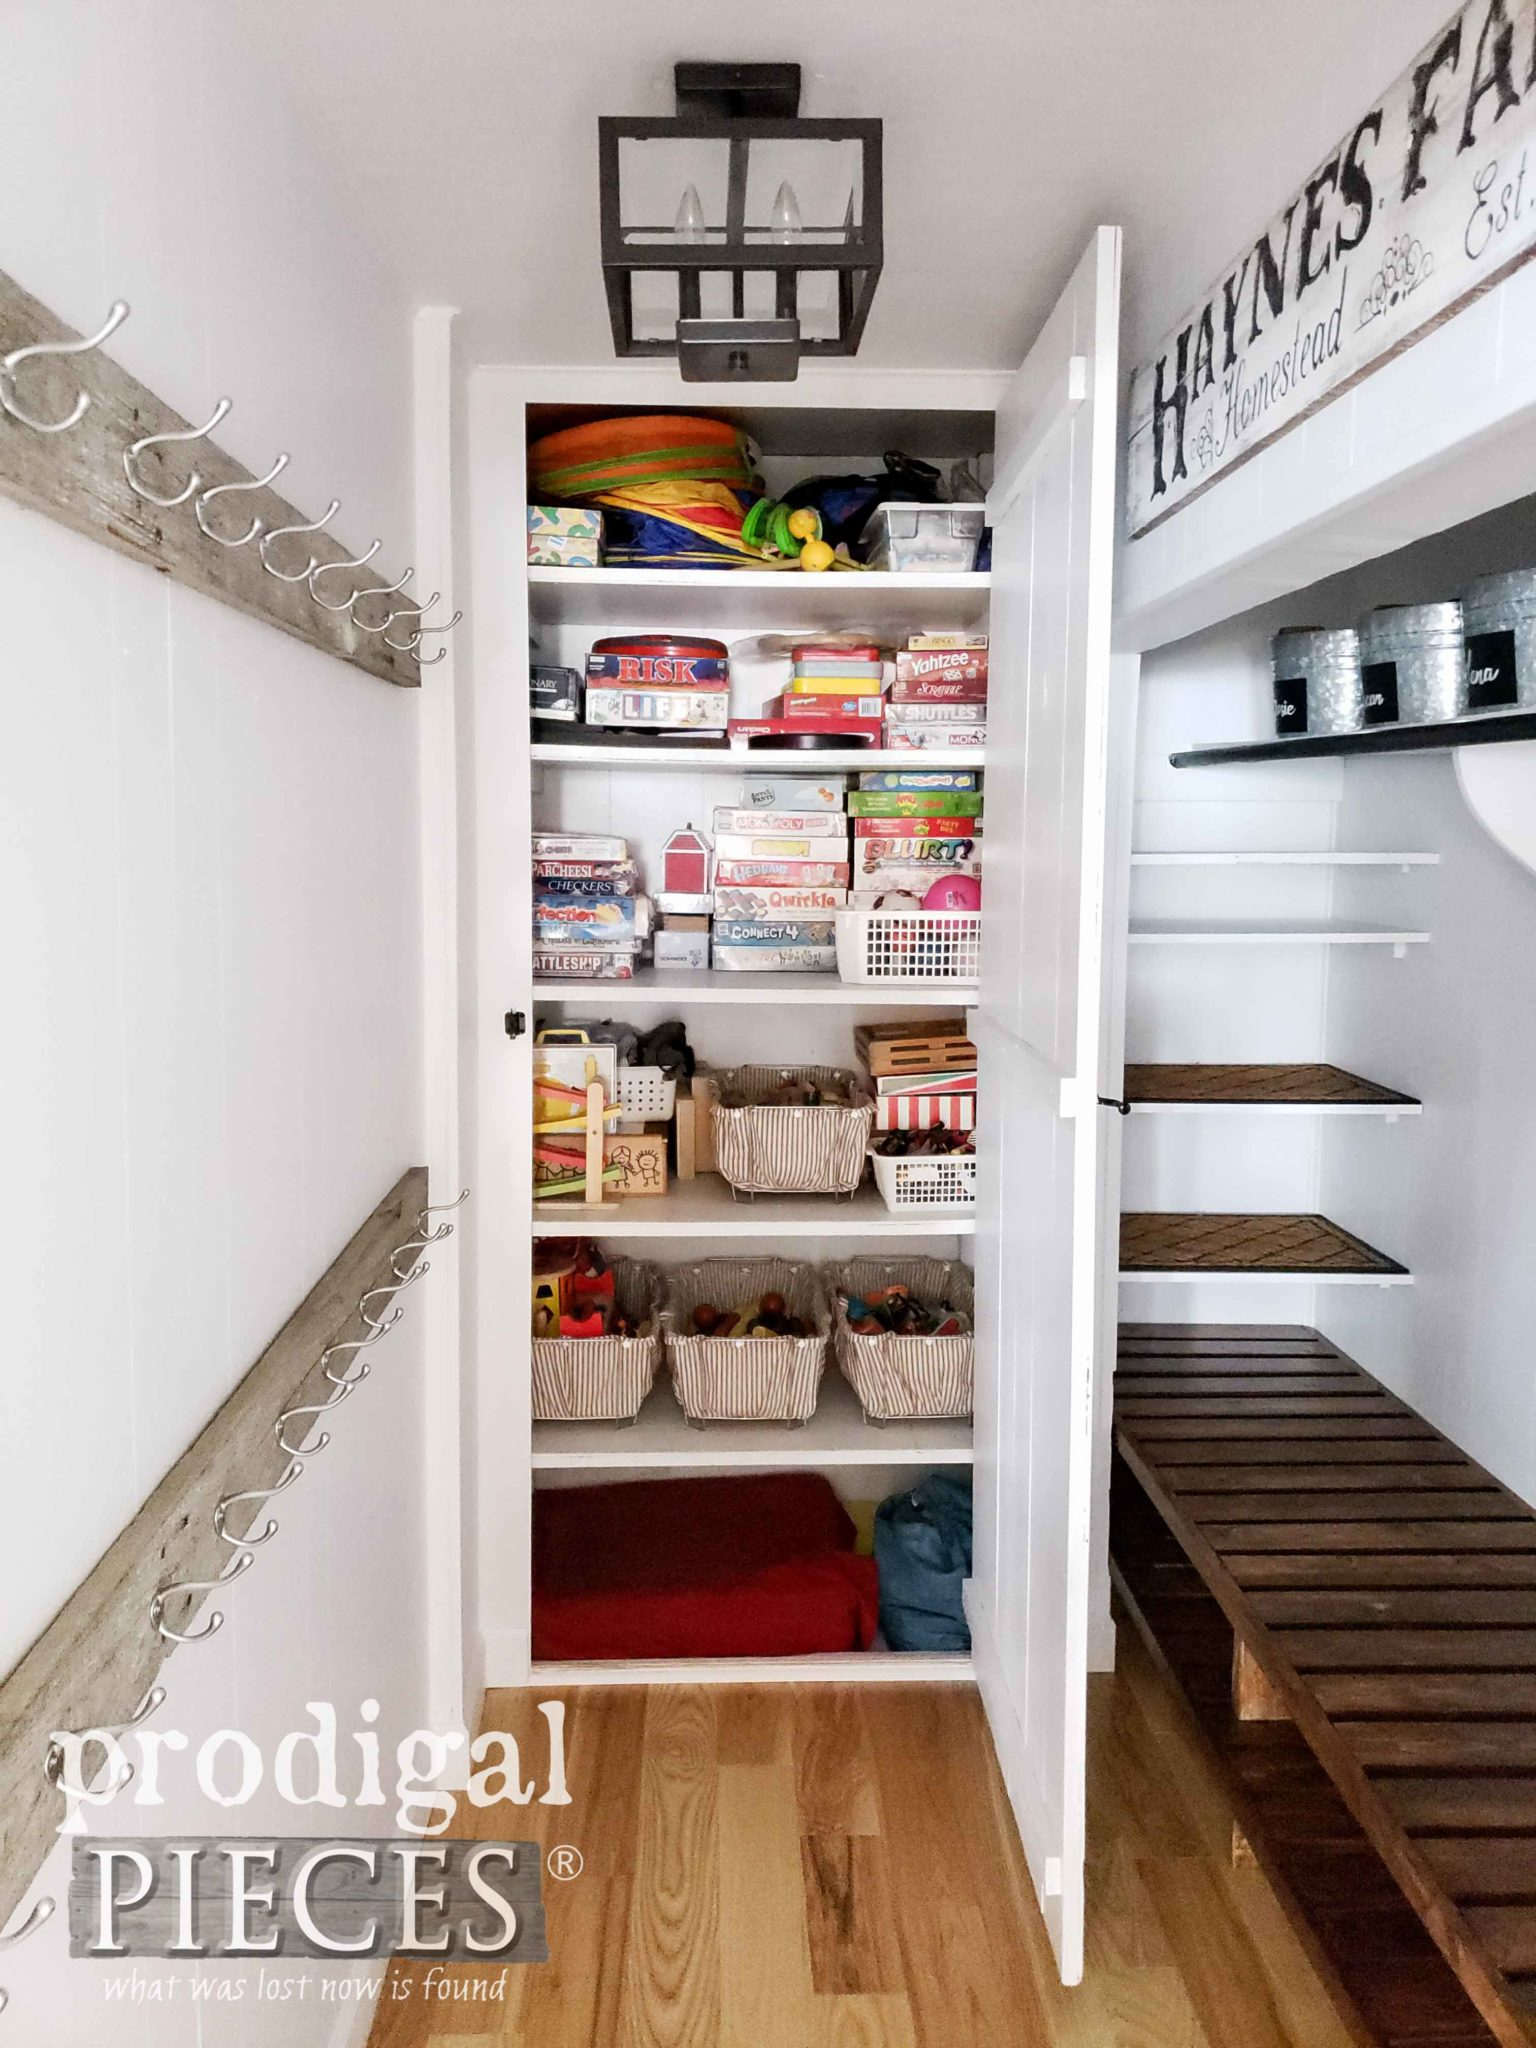 DIY Farmhouse Style Mudroom with Built-In Game Closet by Prodigal Pieces | prodigalpieces.com #prodigalpieces #diy #home #homeimprovement #homedecor #farmhouse